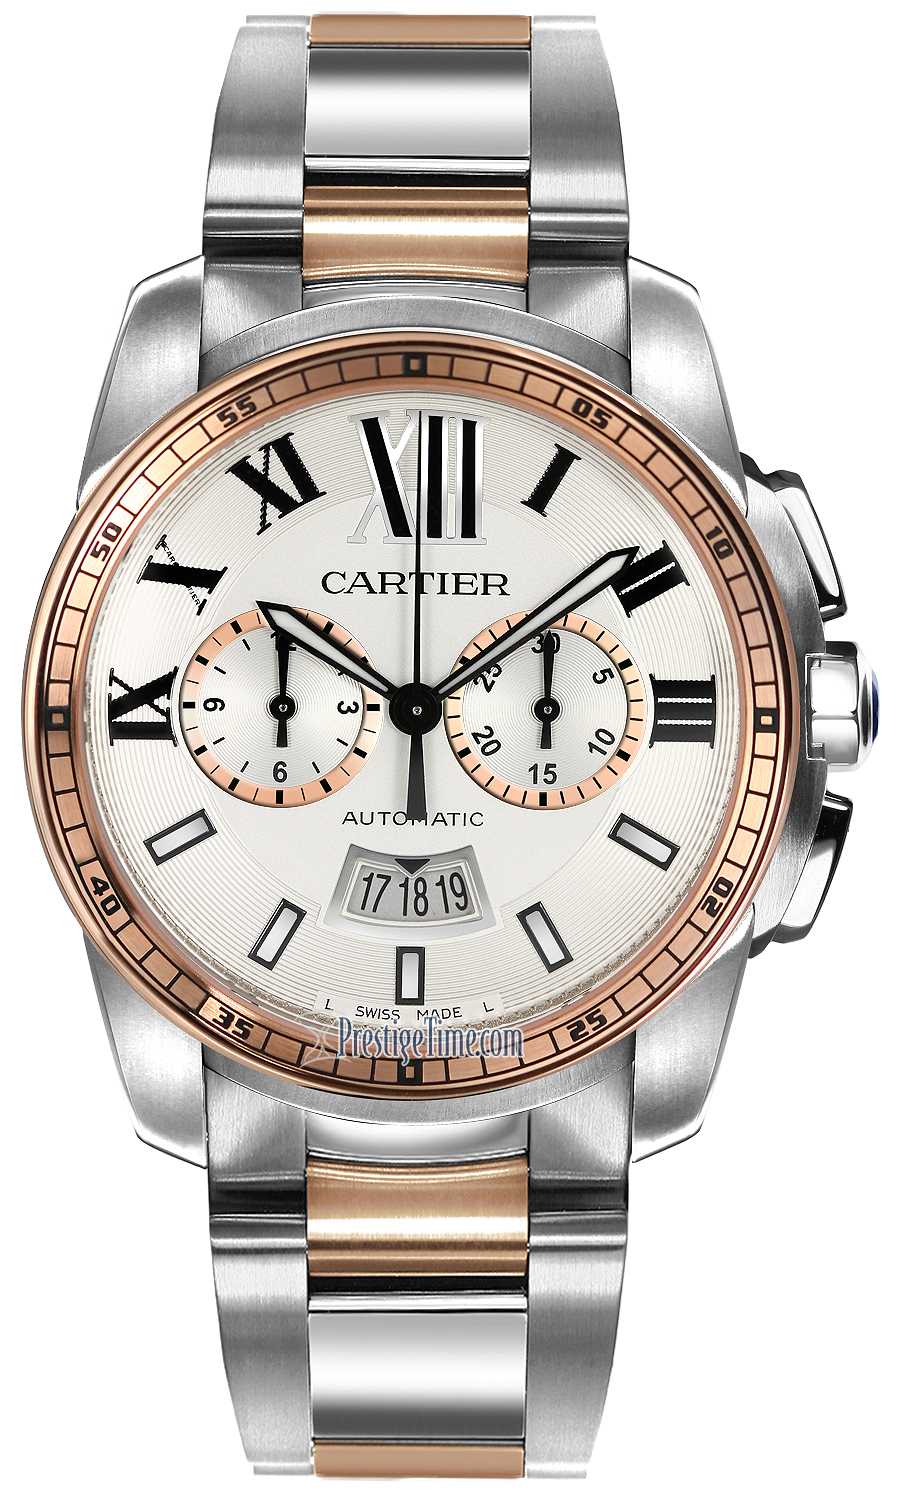 W7100042 Cartier Calibre de Cartier Chronograph Mens Watch 586c9a4ead